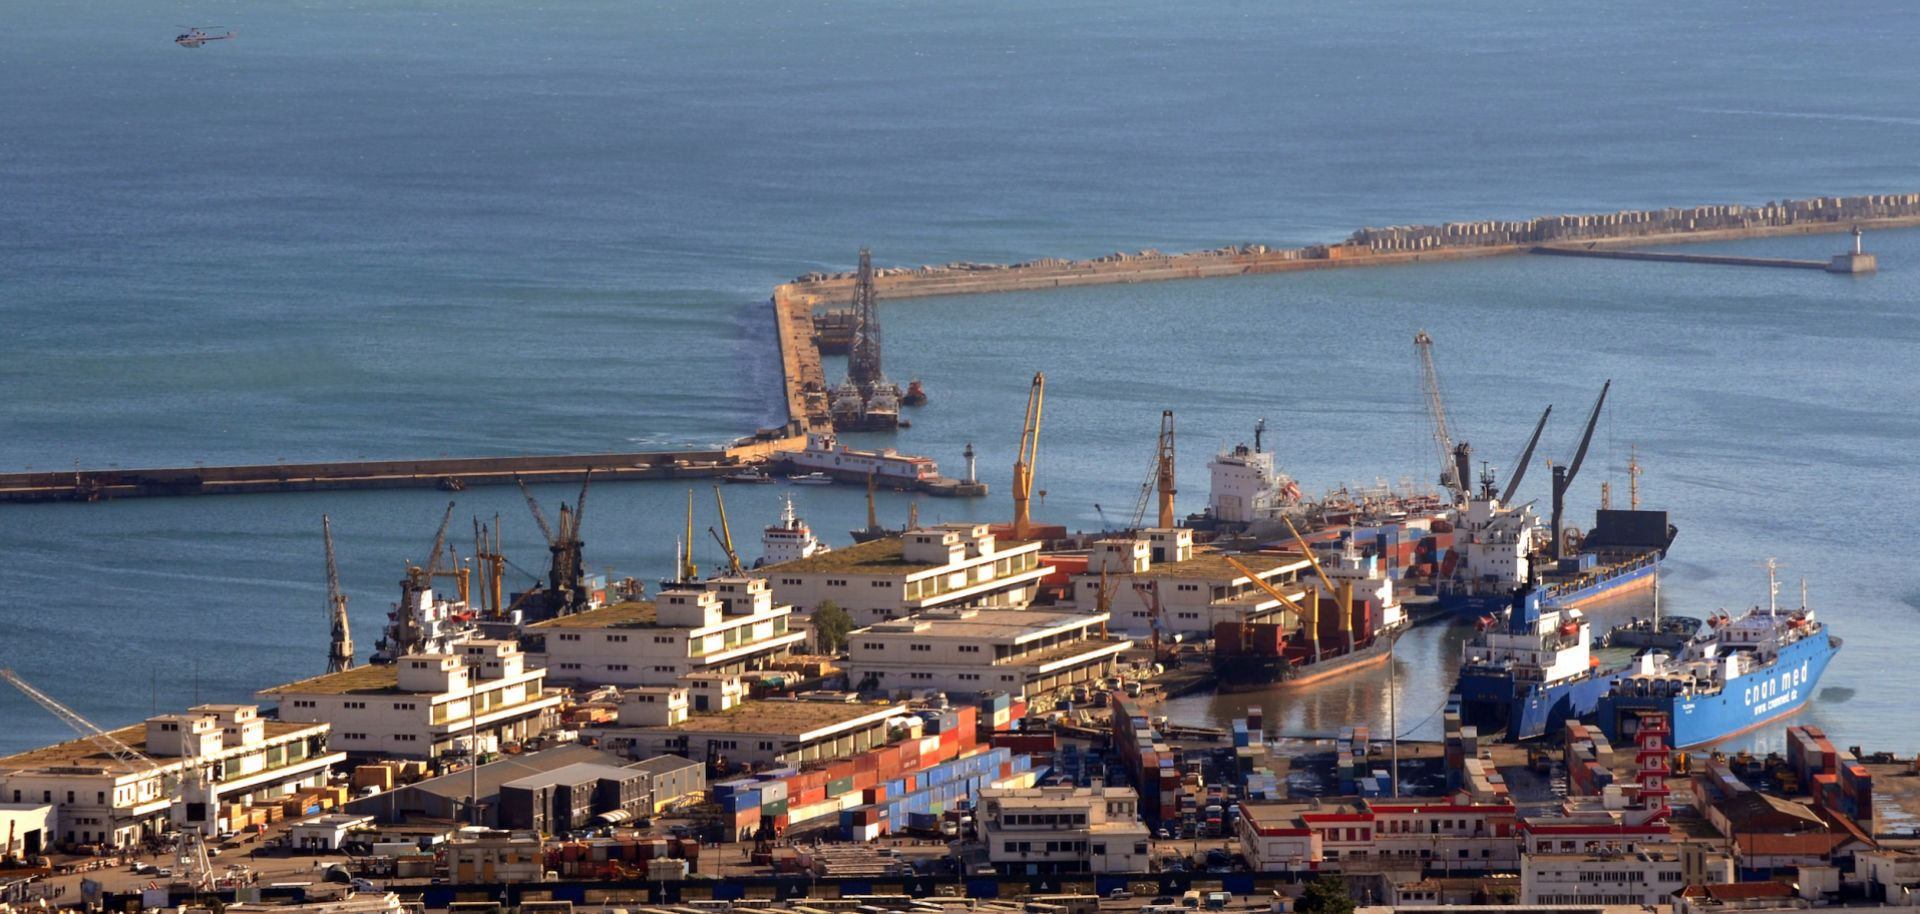 This photo show the main port of the Algerian capital city, Algiers, which stretches into the Mediterranean Sea. A company based in Dubai operates the ports of Algiers and Djen-Djen.